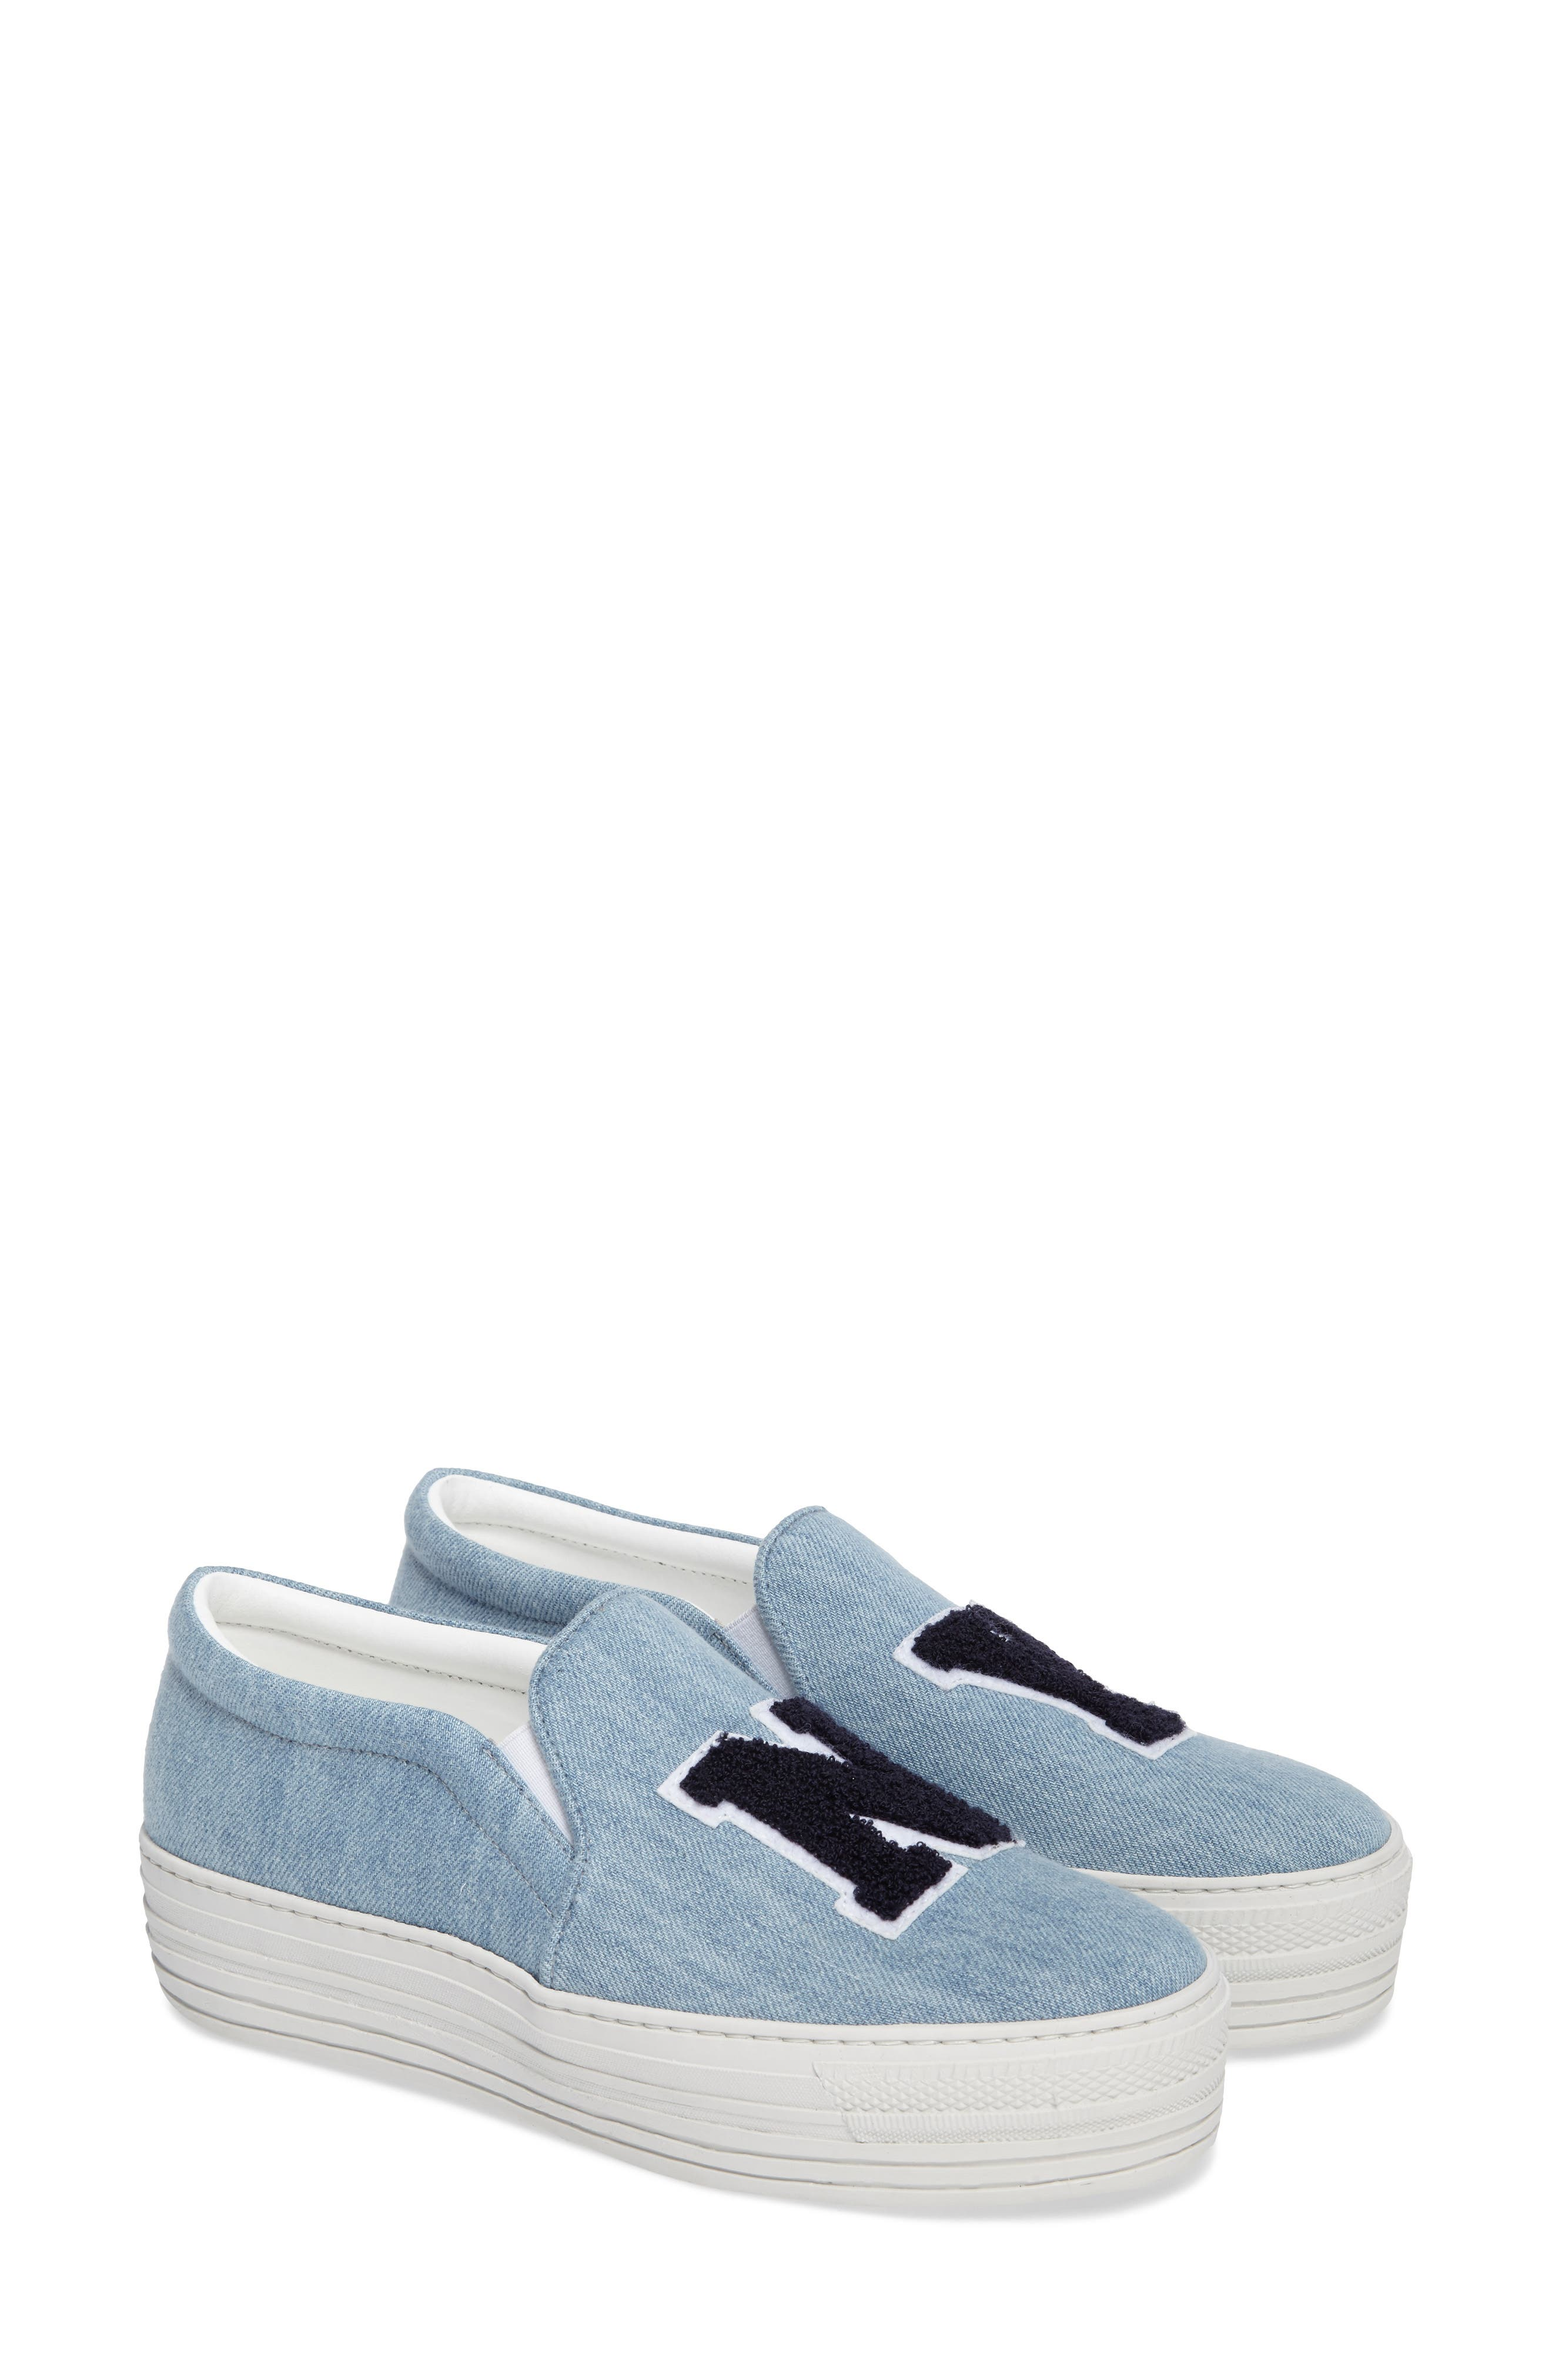 Alternate Image 2  - Joshua Sanders Slip-On Sneaker (Women)